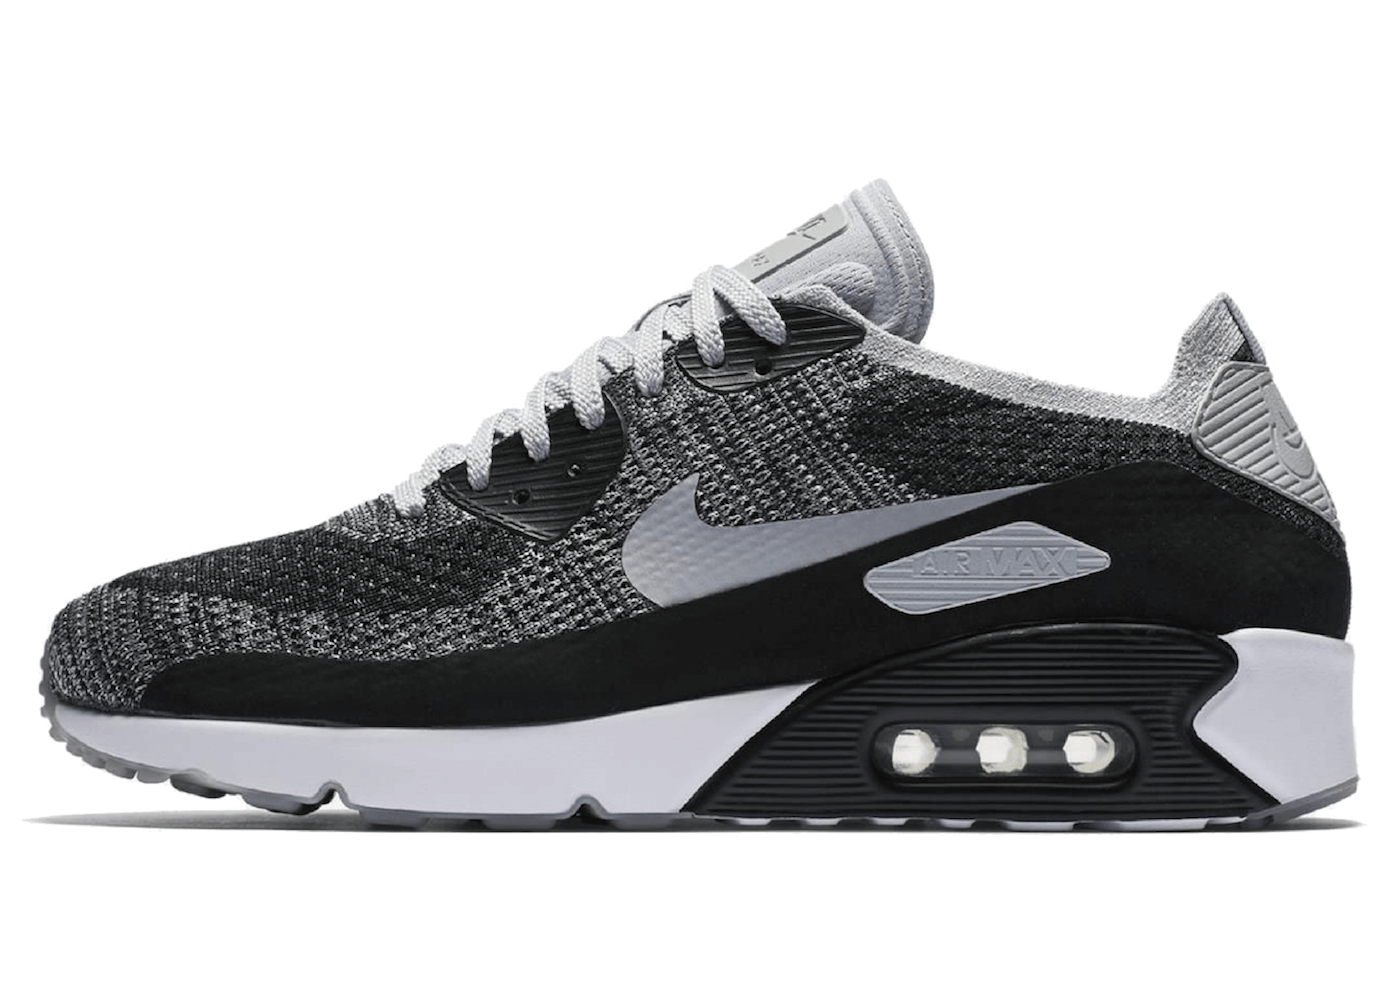 Air Max 90 Ultra 2.0 Flyknit Black Wolf Greyの写真